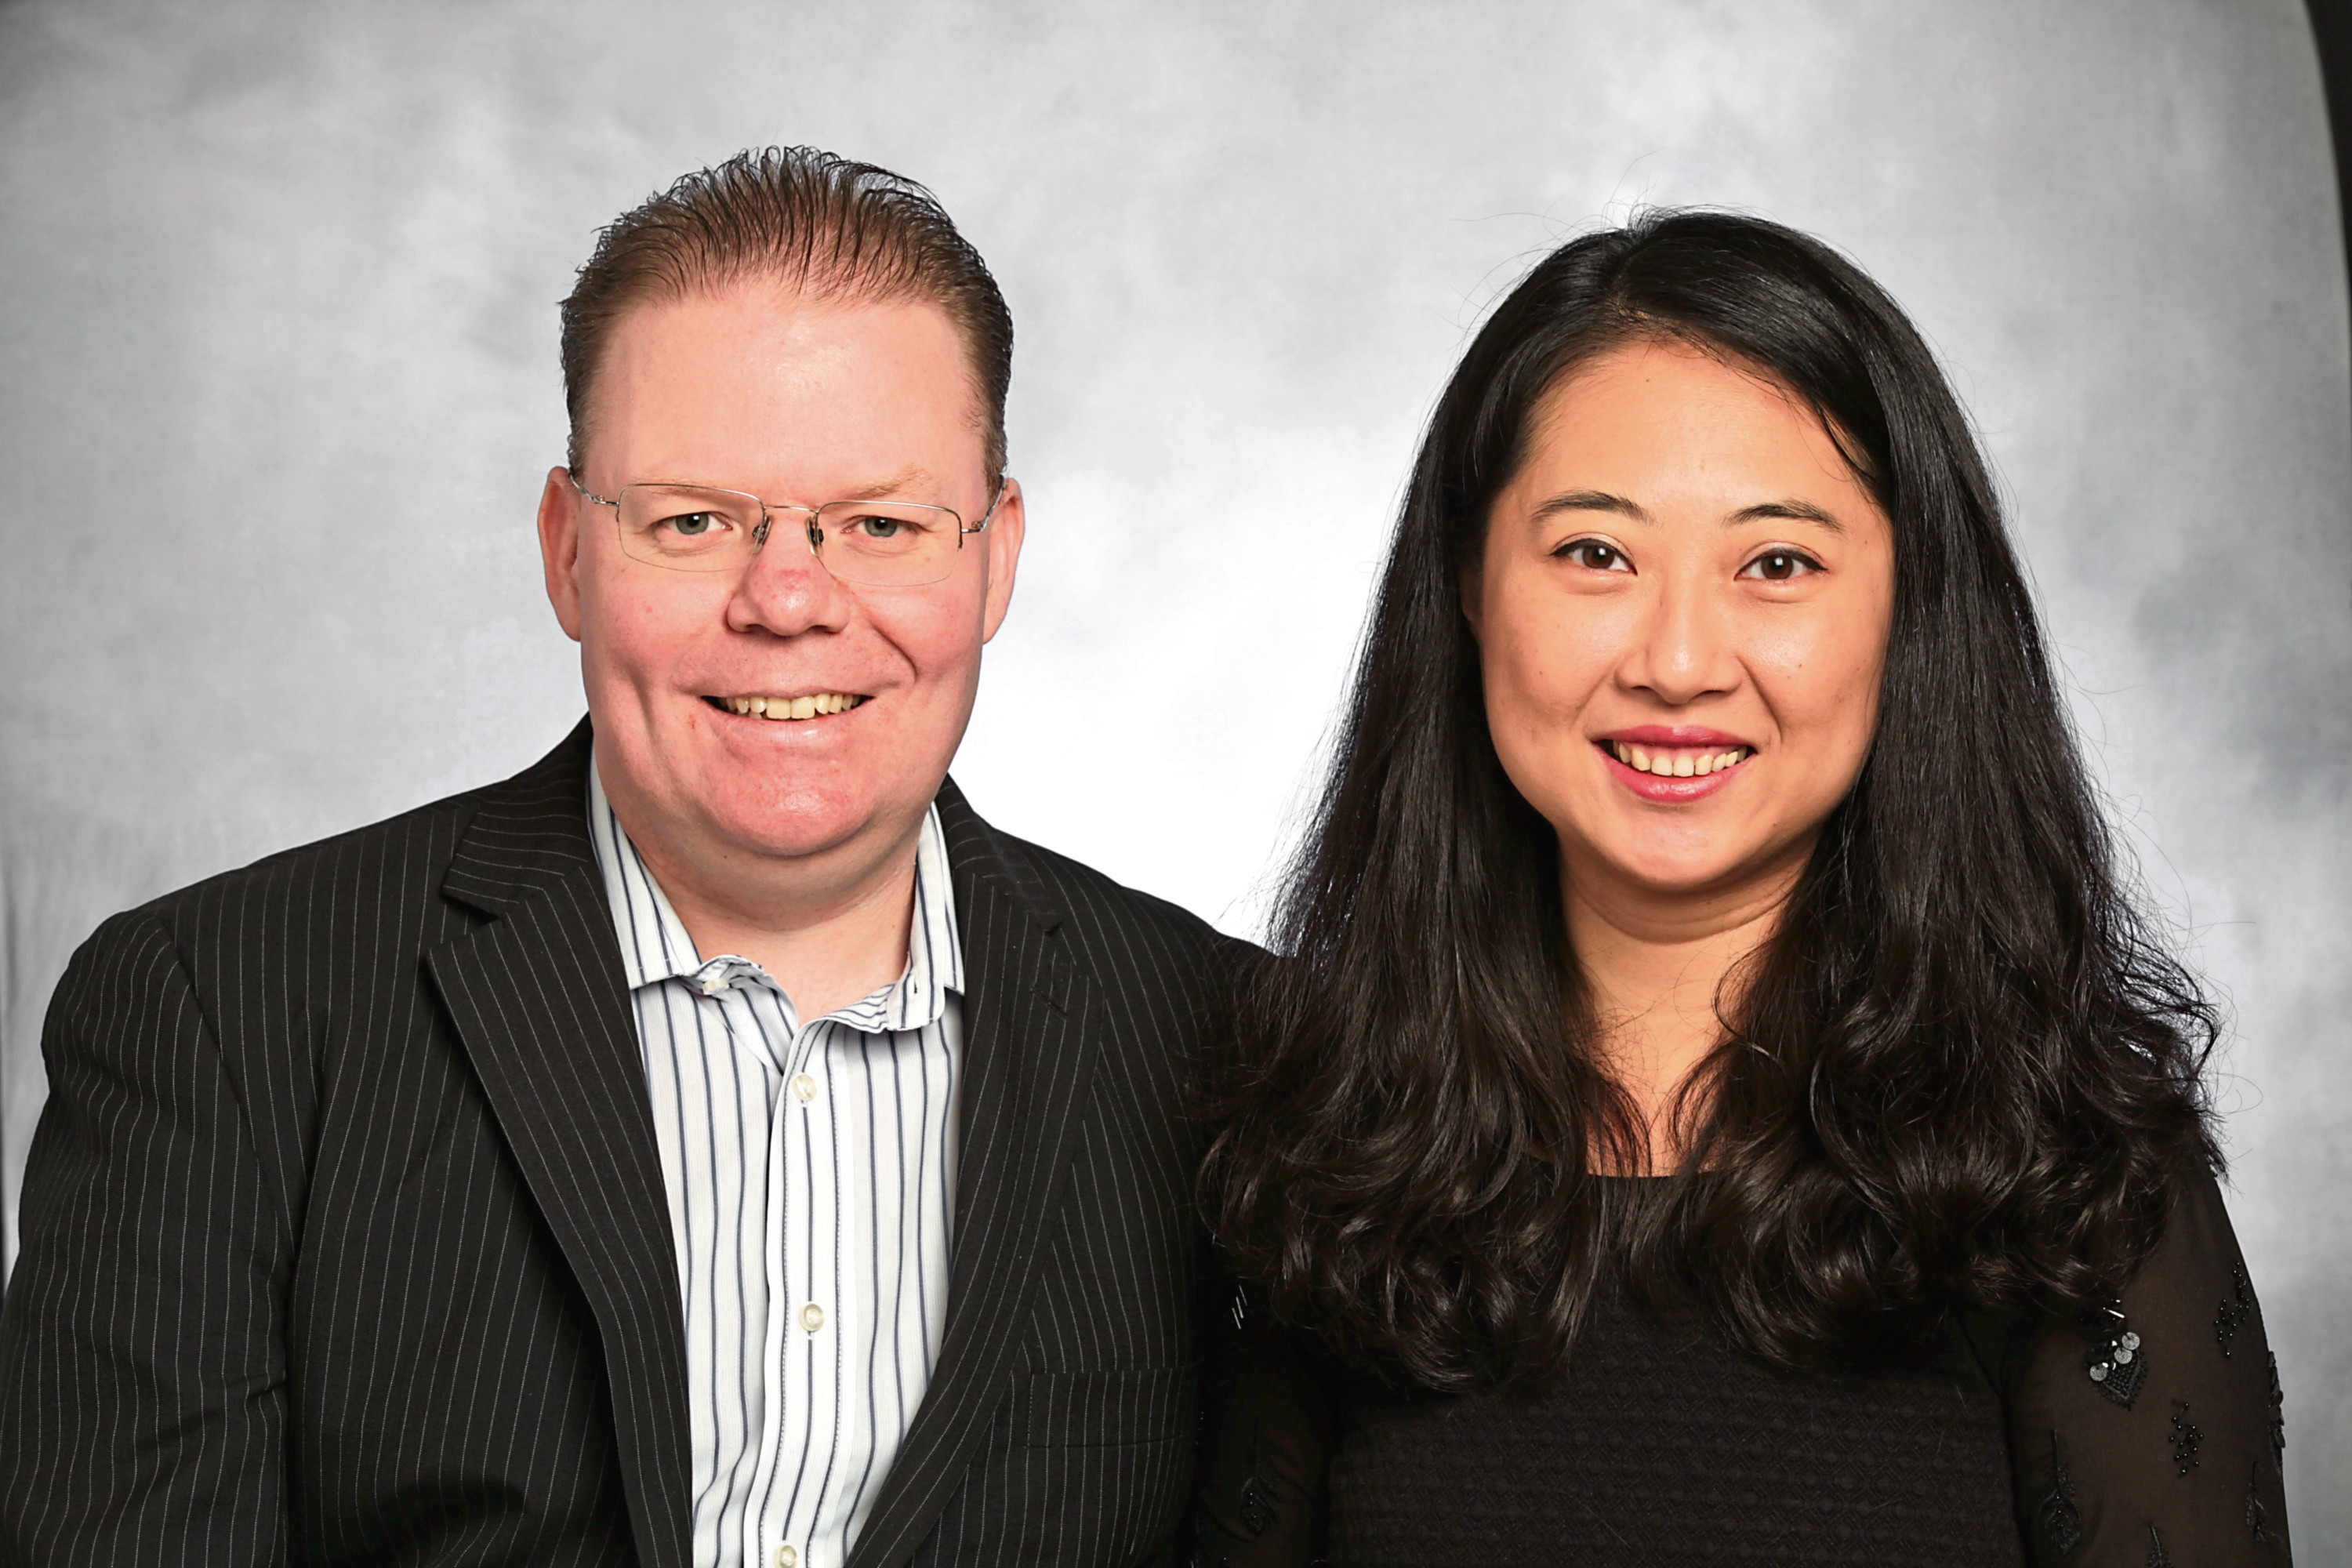 Chris Forbes and Julie Chen, founders of The Cheeky Panda